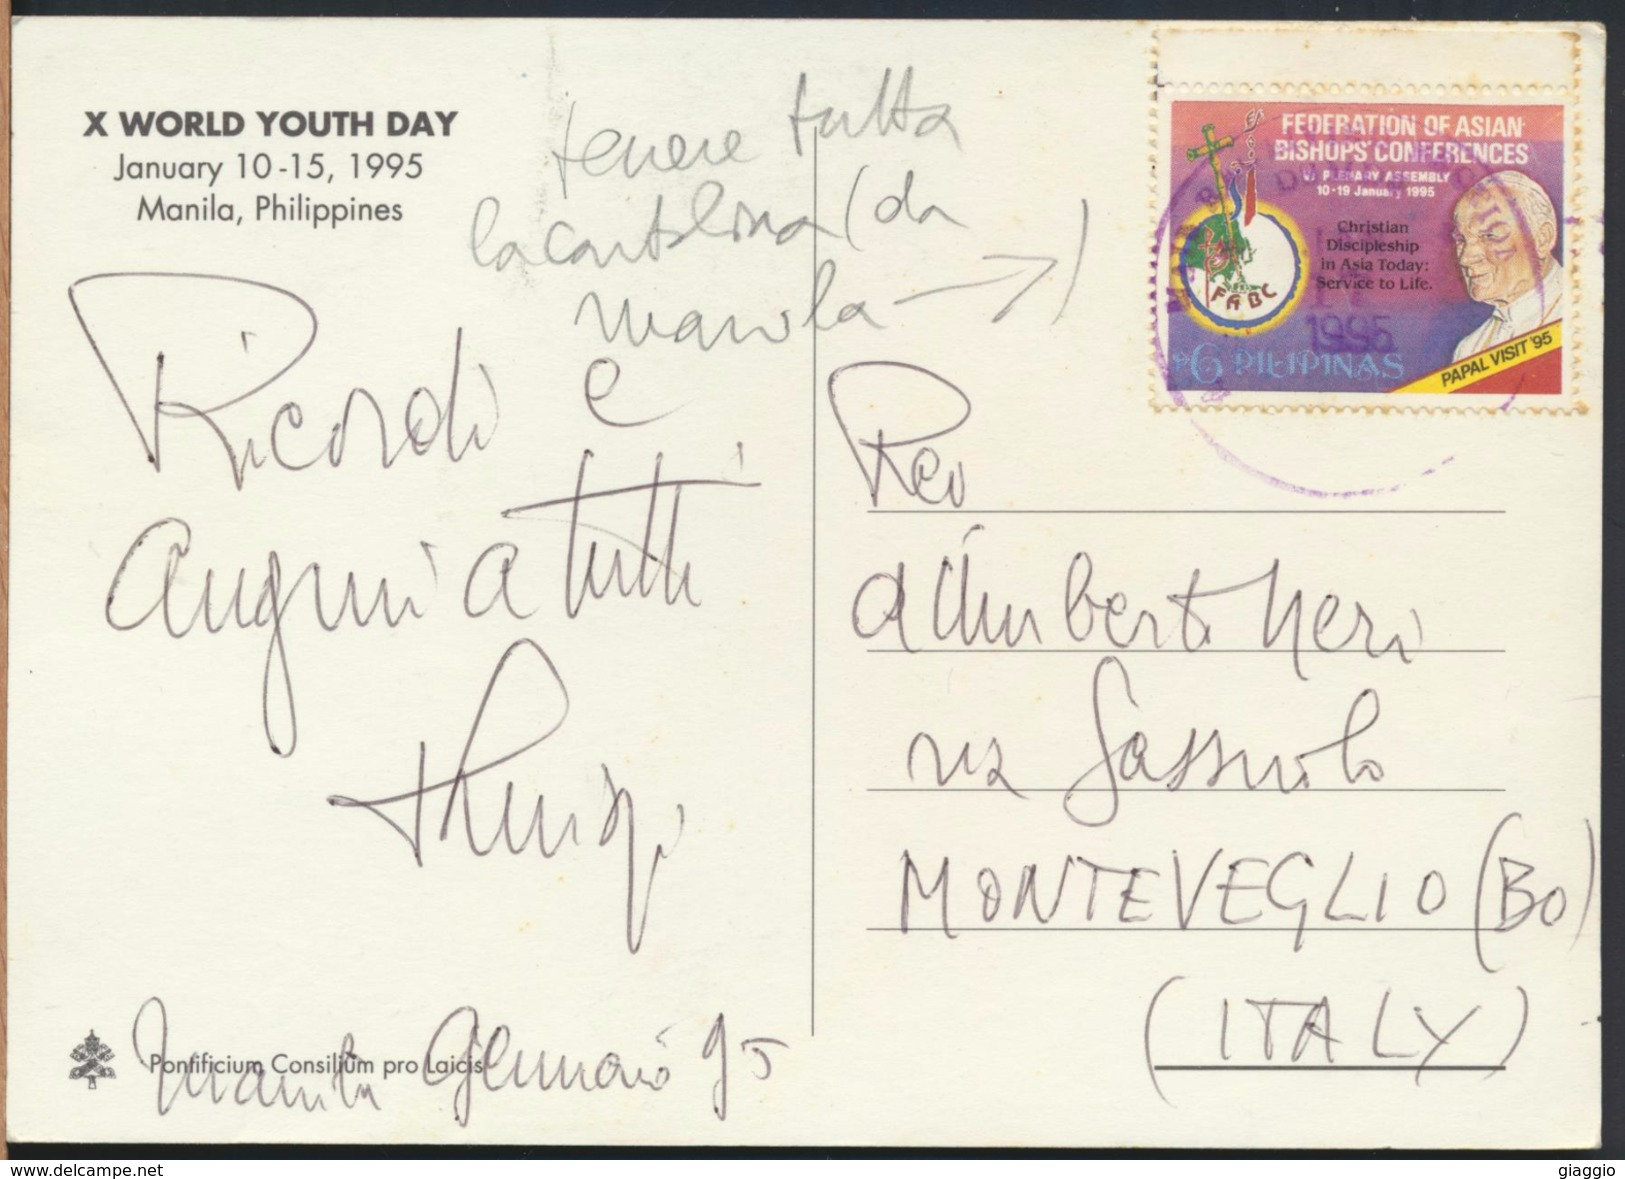 °°° 3976 - PHILIPPINES - MANILA - WORLD YOUTH DAY 1995 - With Stamps °°° - Filippine